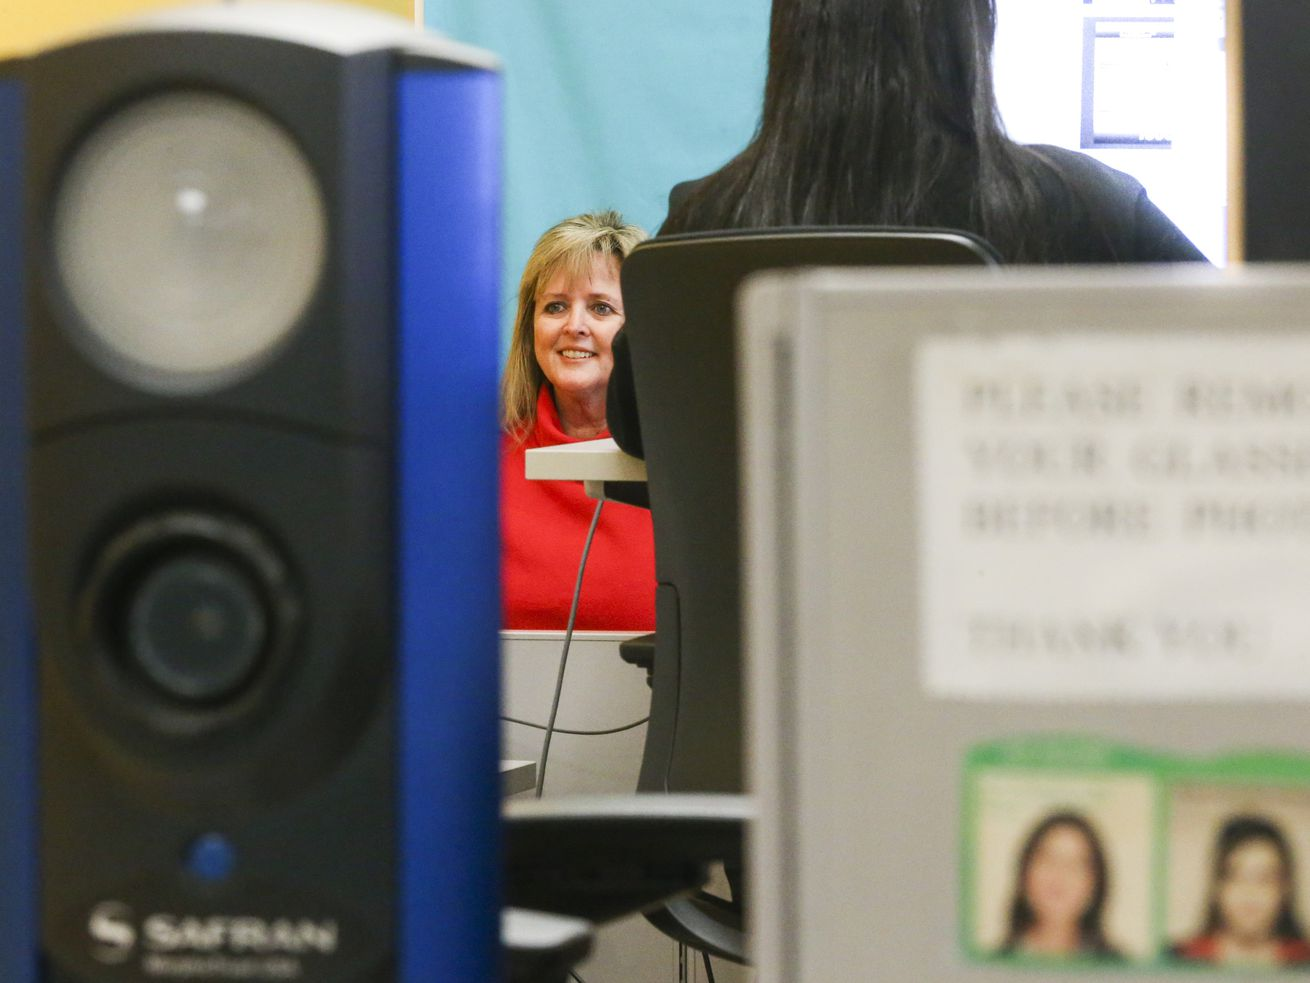 Jodie Jones gets a picture taken for her driver's license at the Driver License Division of the Utah Division of Motor Vehicles in Salt Lake City on Monday, Dec. 16, 2019. Federal and state lawmakers are scrambling to construct rules to ensure emerging facial recognition technology is not deployed in a manner that infringes on Fourth Amendment protections.